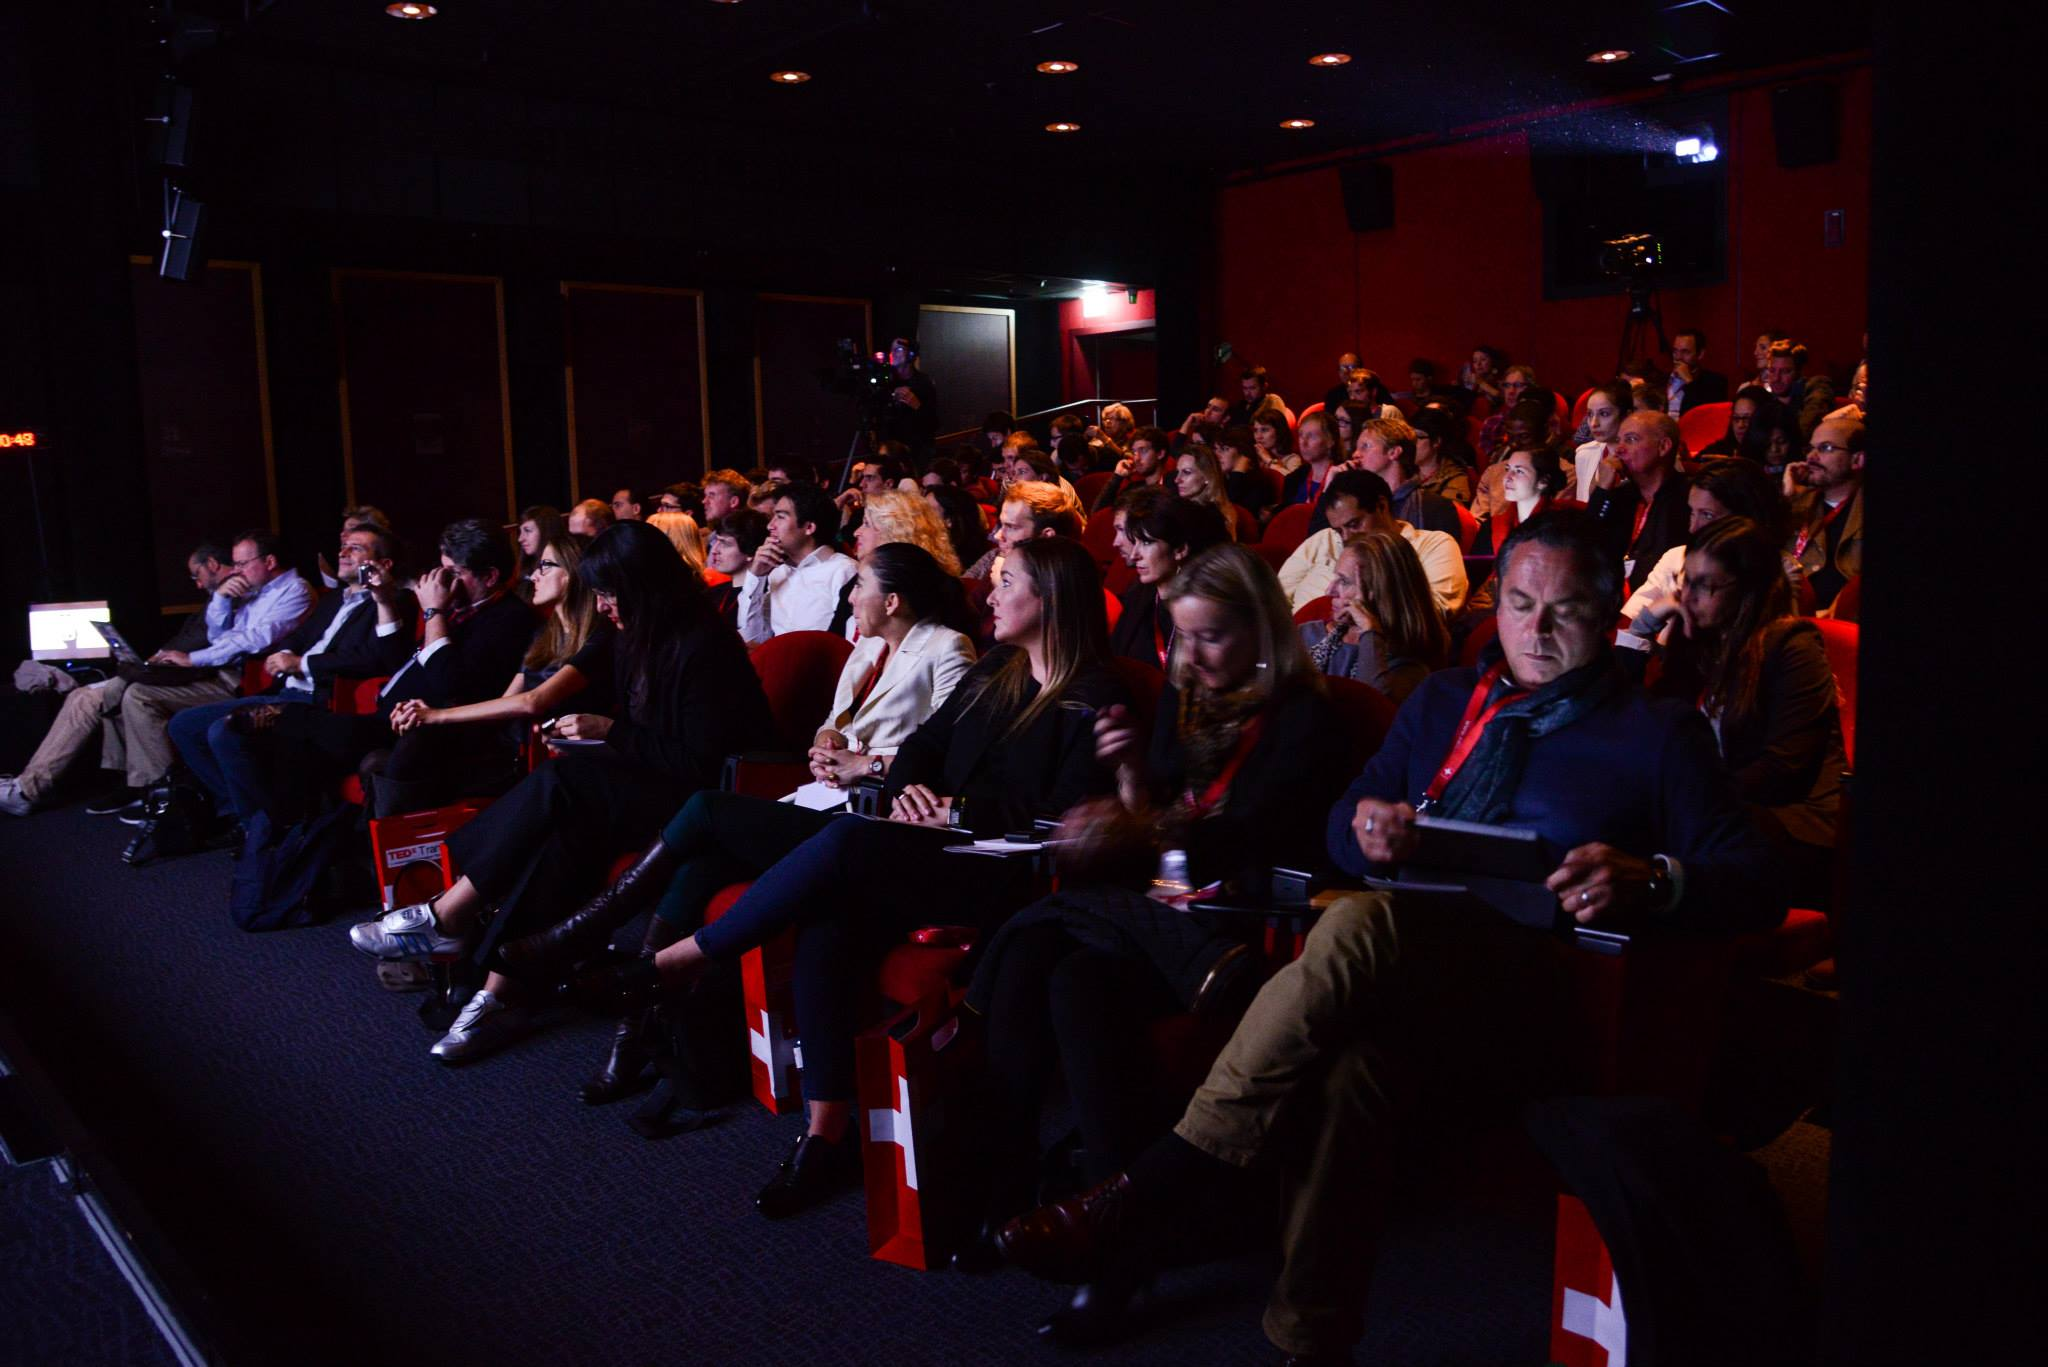 TEDx Transmedia audience. Pic by Lisa Lemee